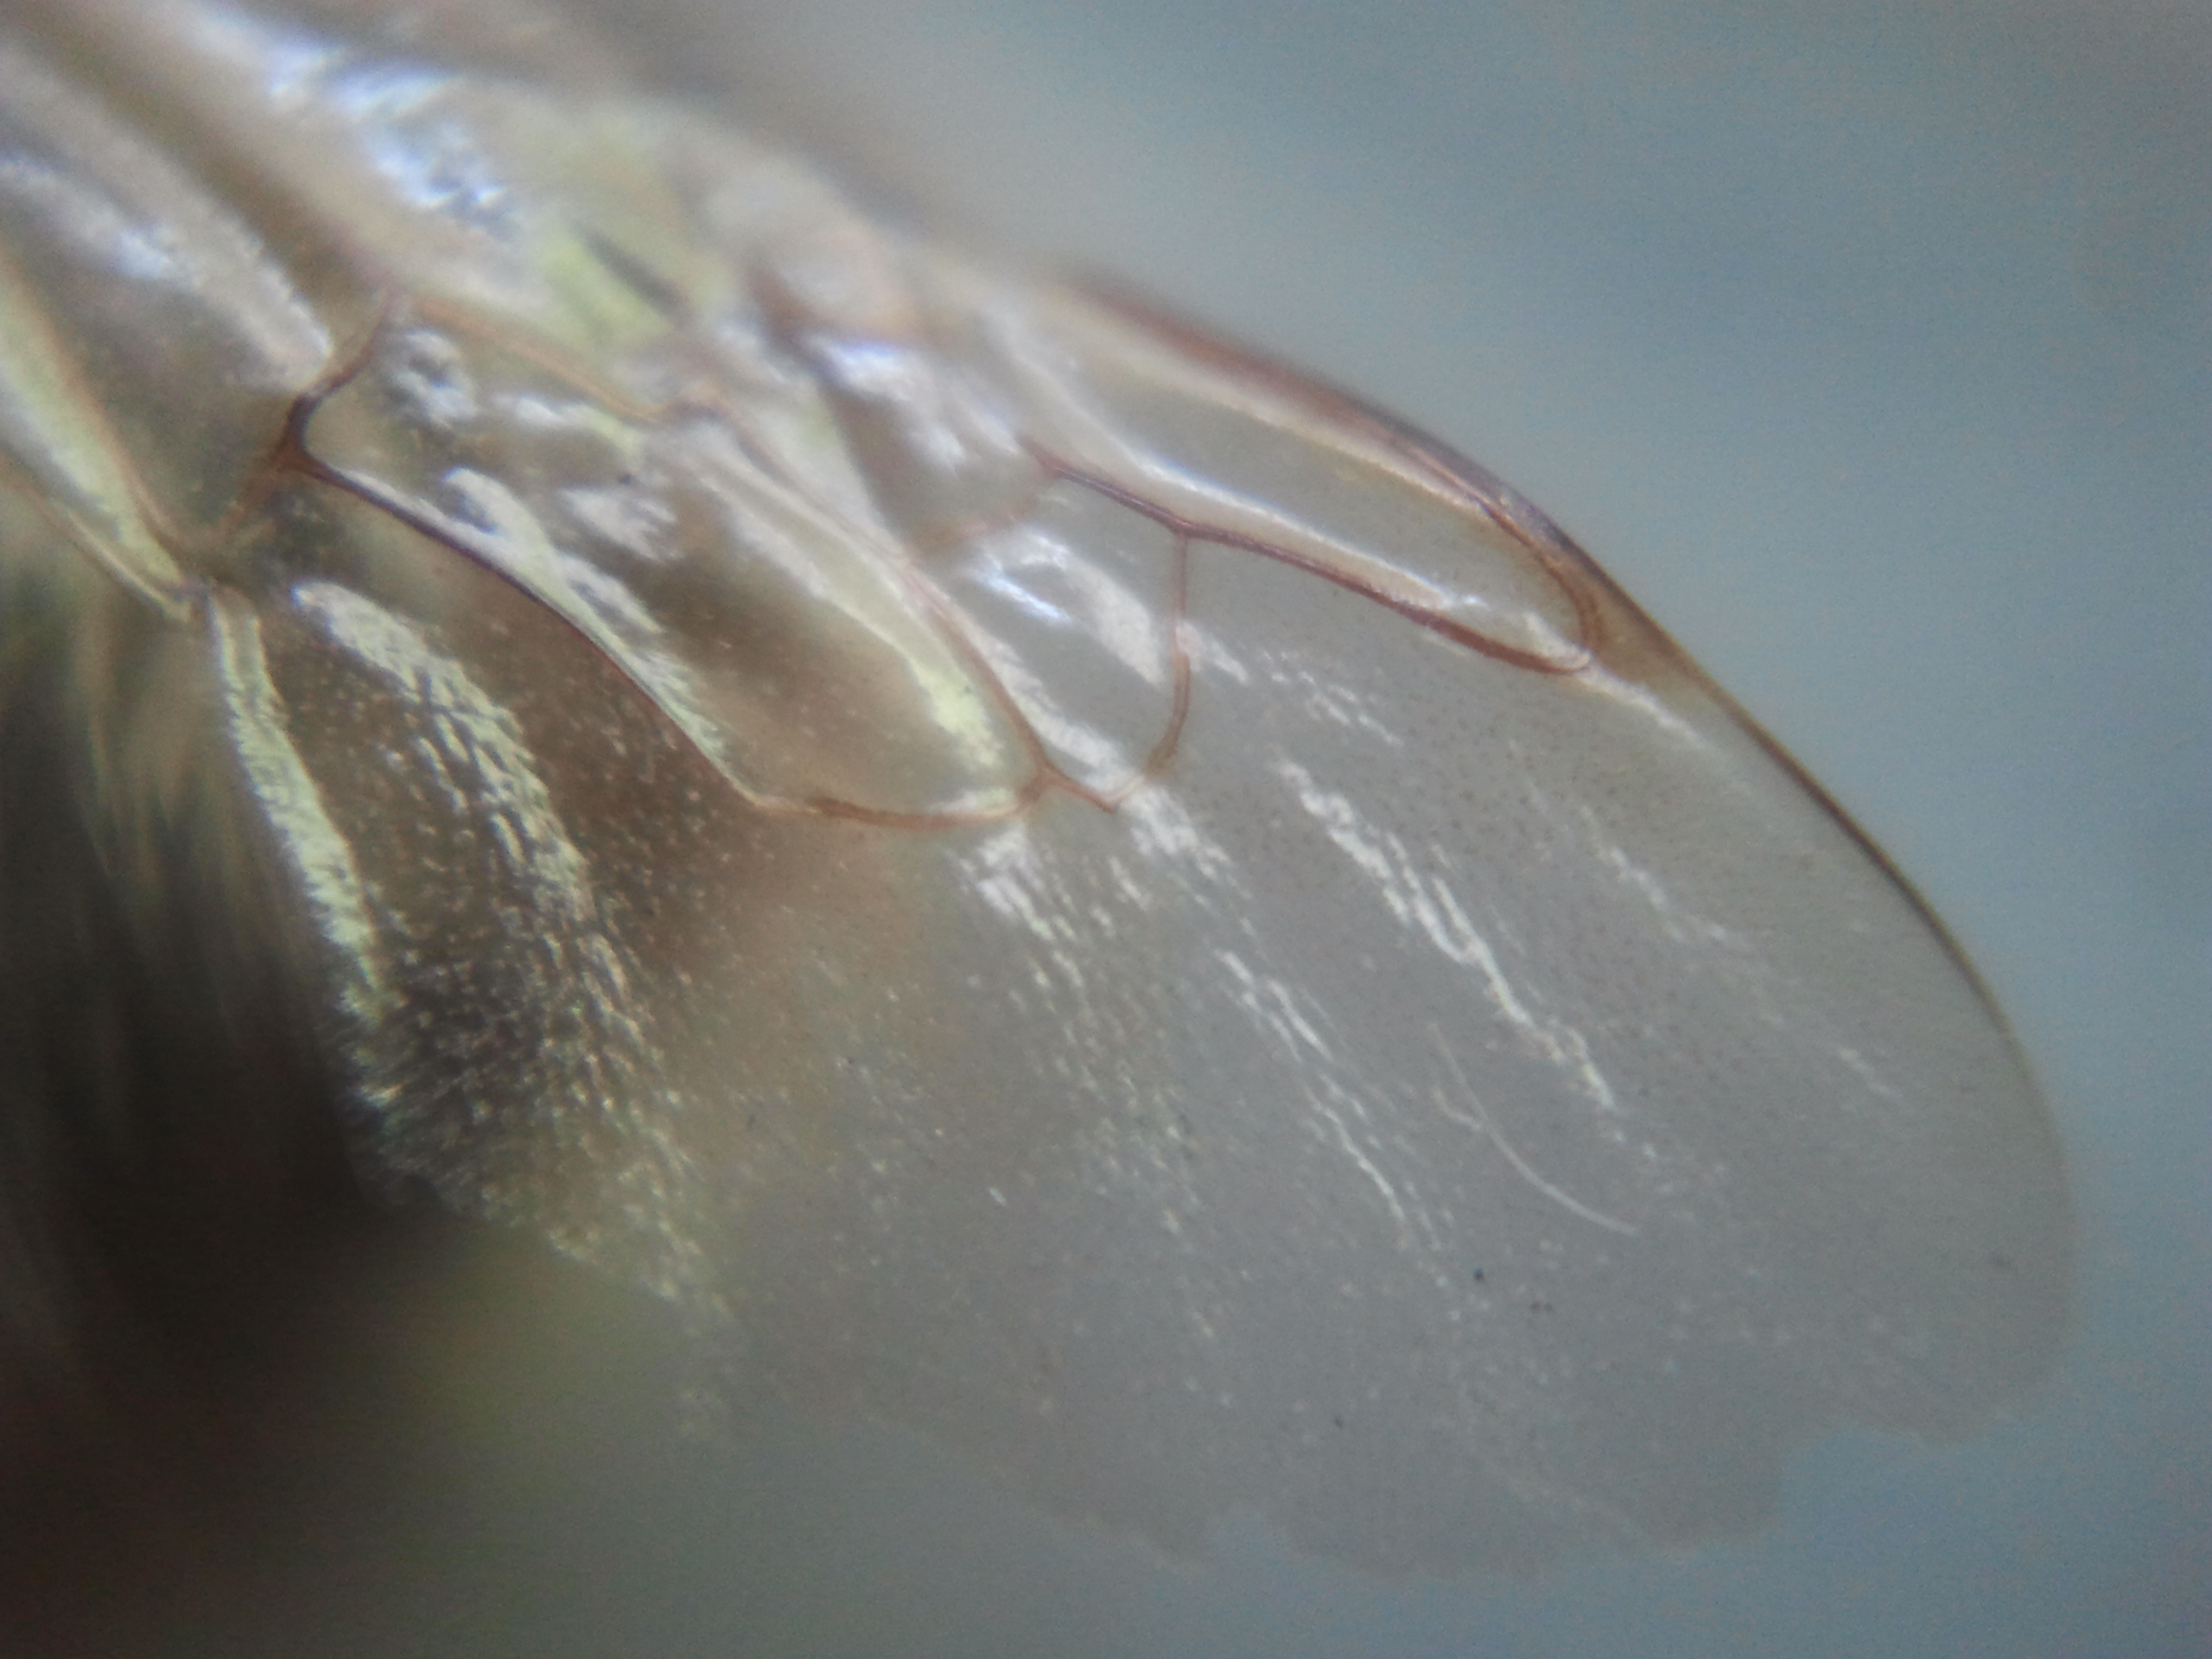 A fly wing magnified 15 times.